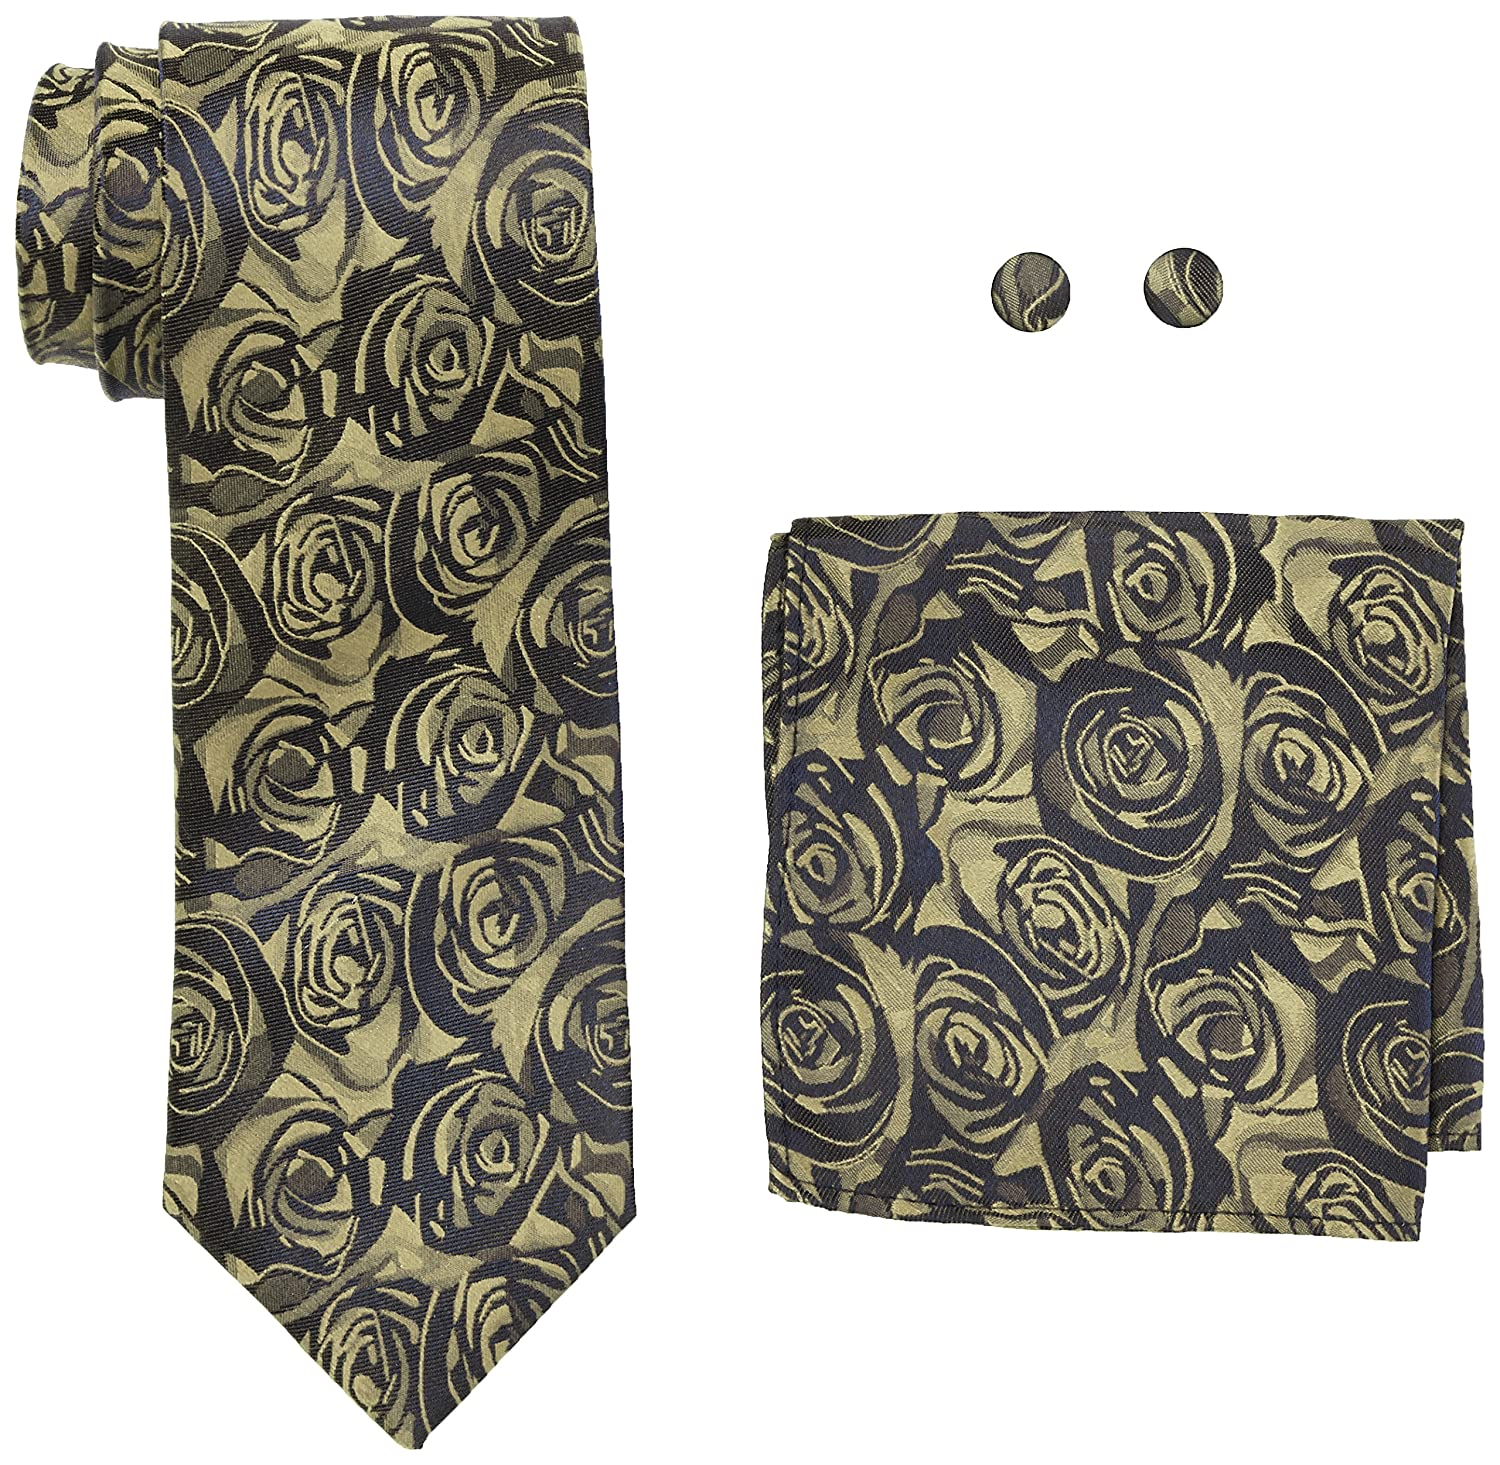 Landisun Stripes Mens Silk Necktie Set: Tie+Hanky+Cufflinks 15N Blue Yellow, 3.25Wx59L 3.25Wx59L 1815N-CA